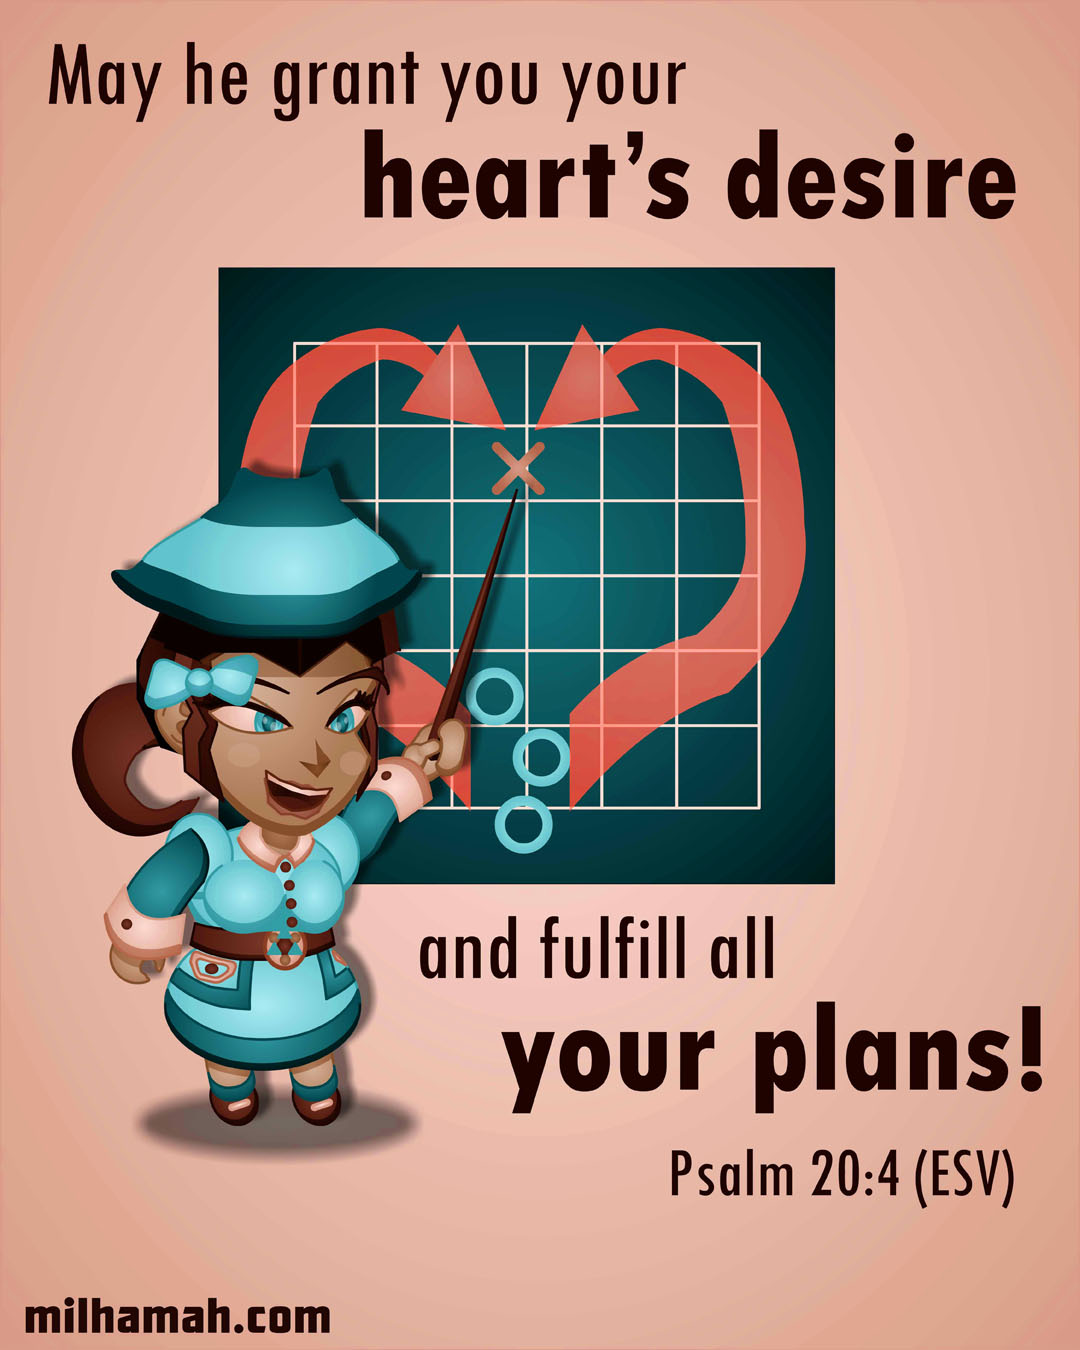 Inspiration came to me through Psalm 20:4.